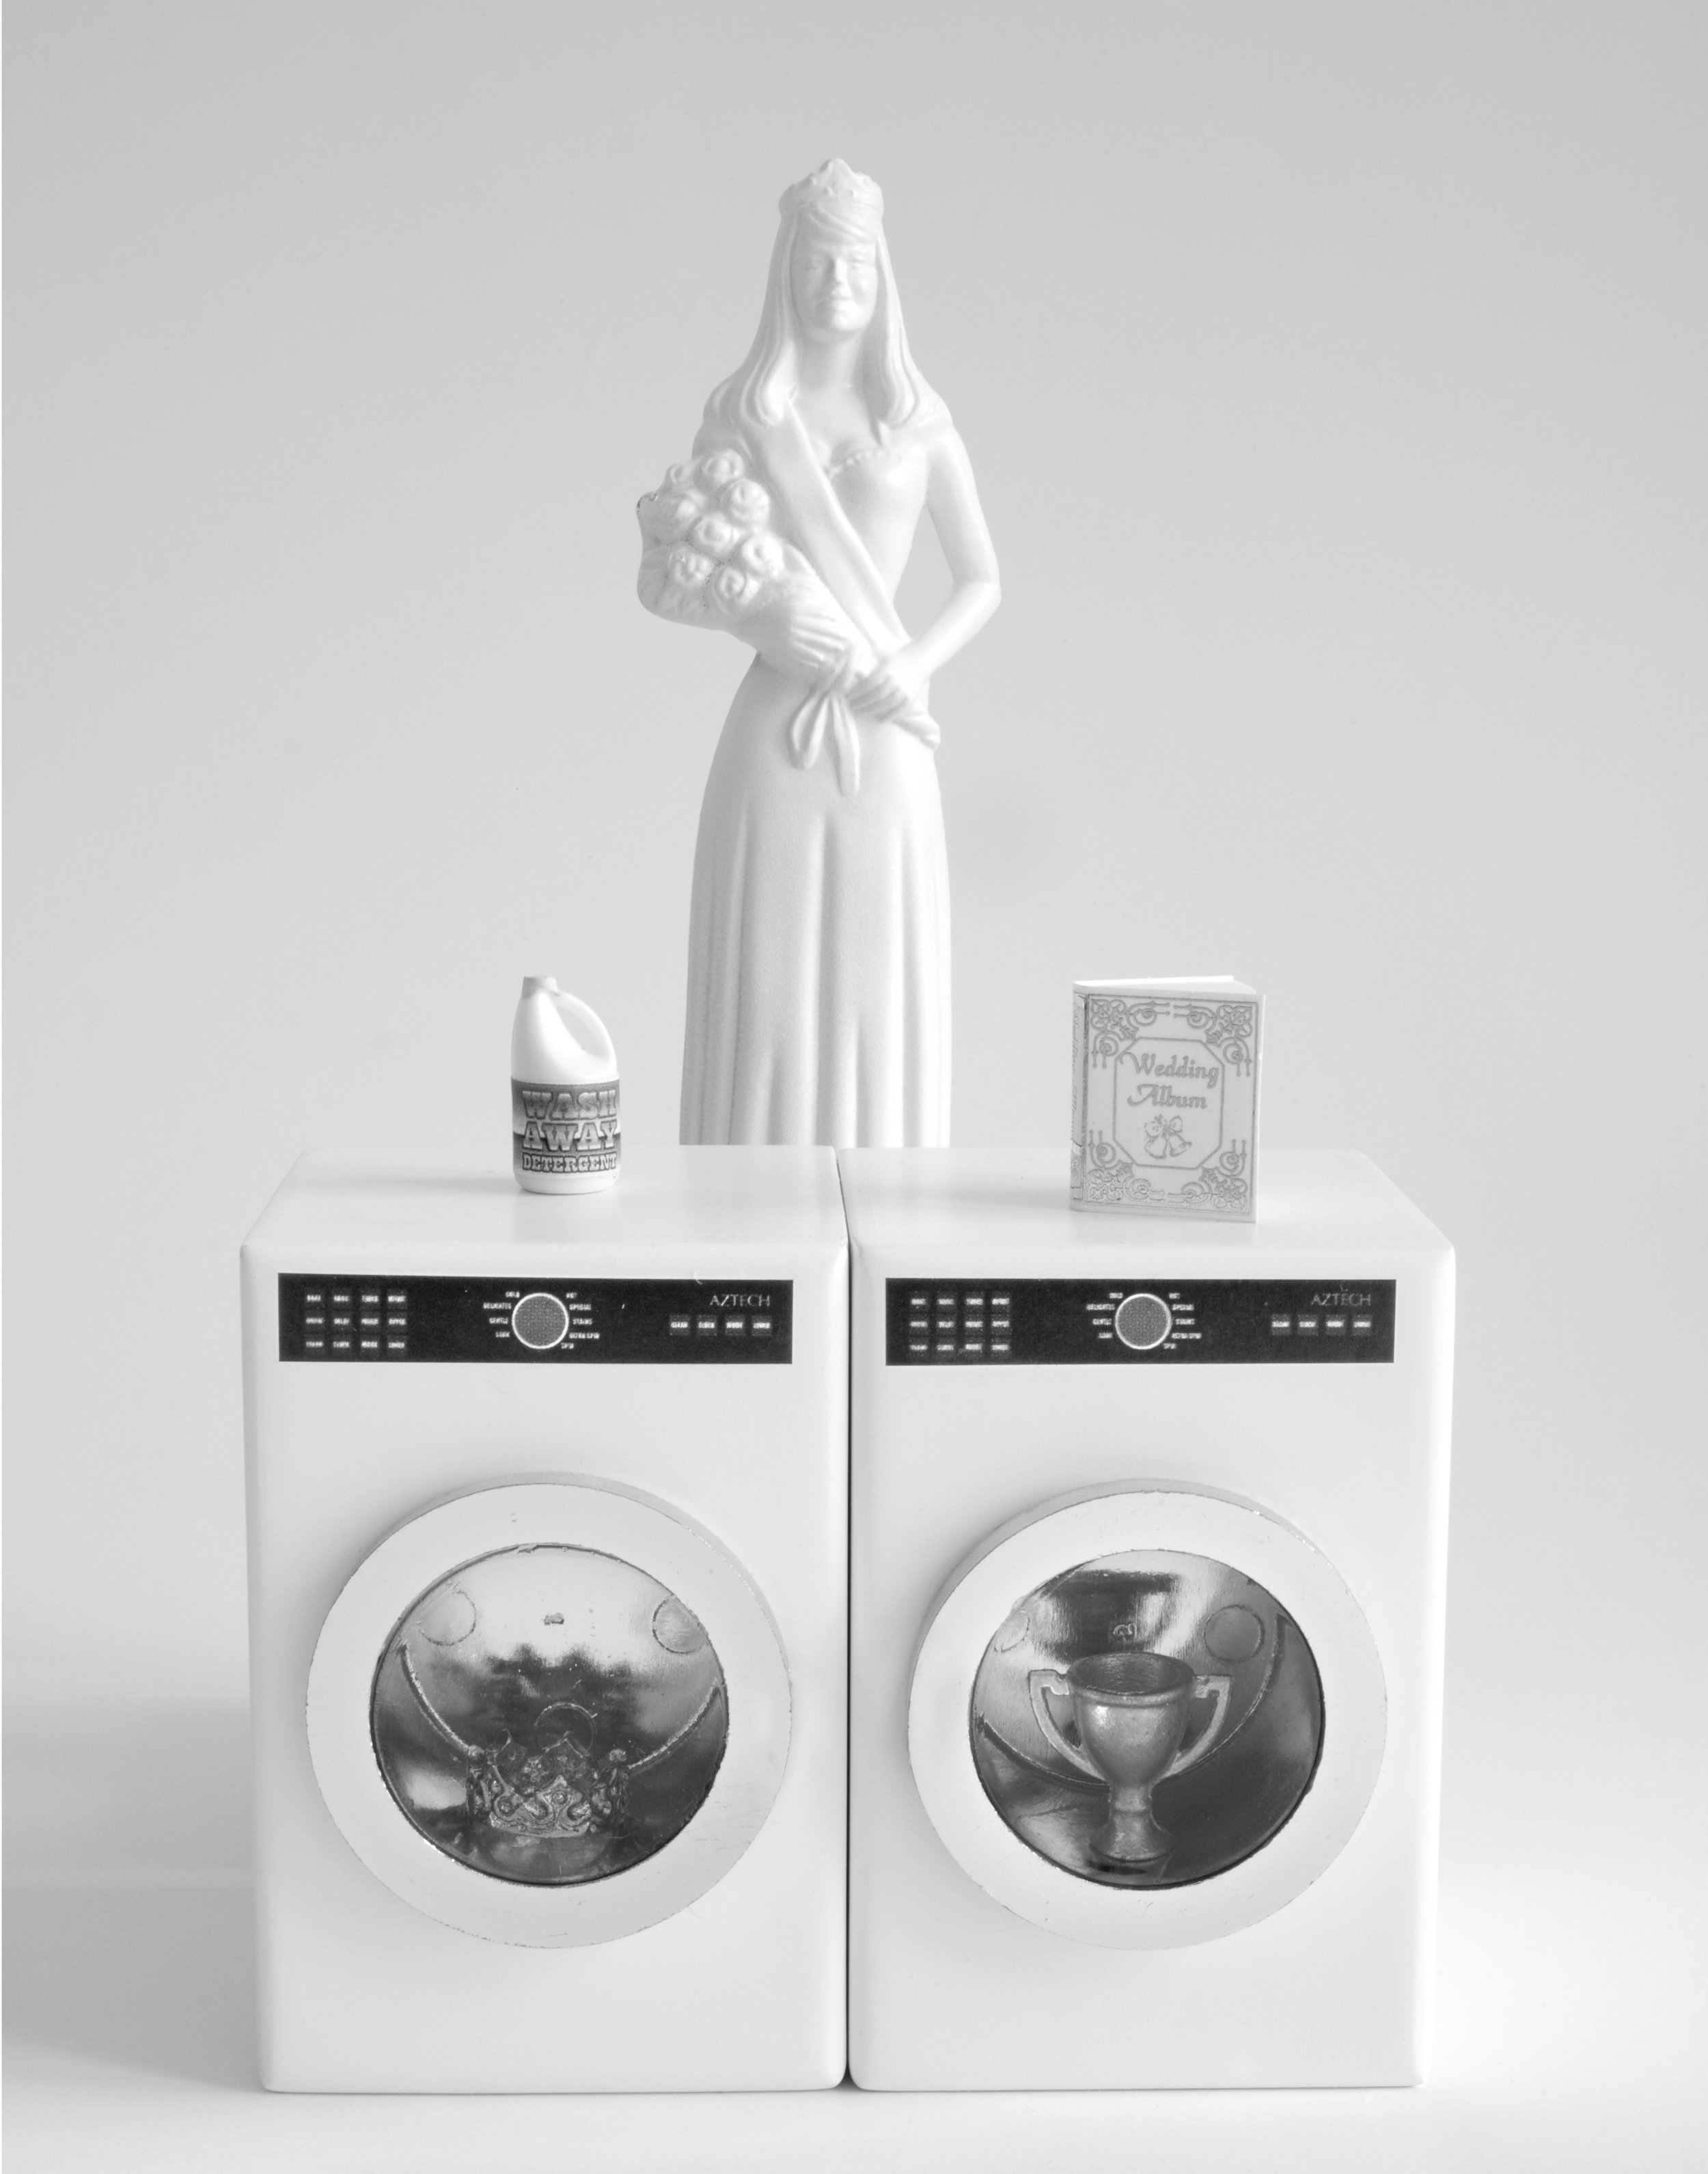 "White Dress and Matching Appliances , 2010  Photograph in archival ink on rag paper  26 x 32 inches  In  White Dress and Matching Appliances,  the beauty queen stands behind a matching washer and dryer set. Each machine contains a single item: in one, a crown; in the other, a trophy. A bottle of ""Wash Away"" detergent tops one machine. Like many of the works in the series, this piece comments on the dark underbelly of women's roles in domestic life. The work serves to humanize the figure of the beauty queen: her features may have been buffed away to anonymity, but her personal struggles are clear."